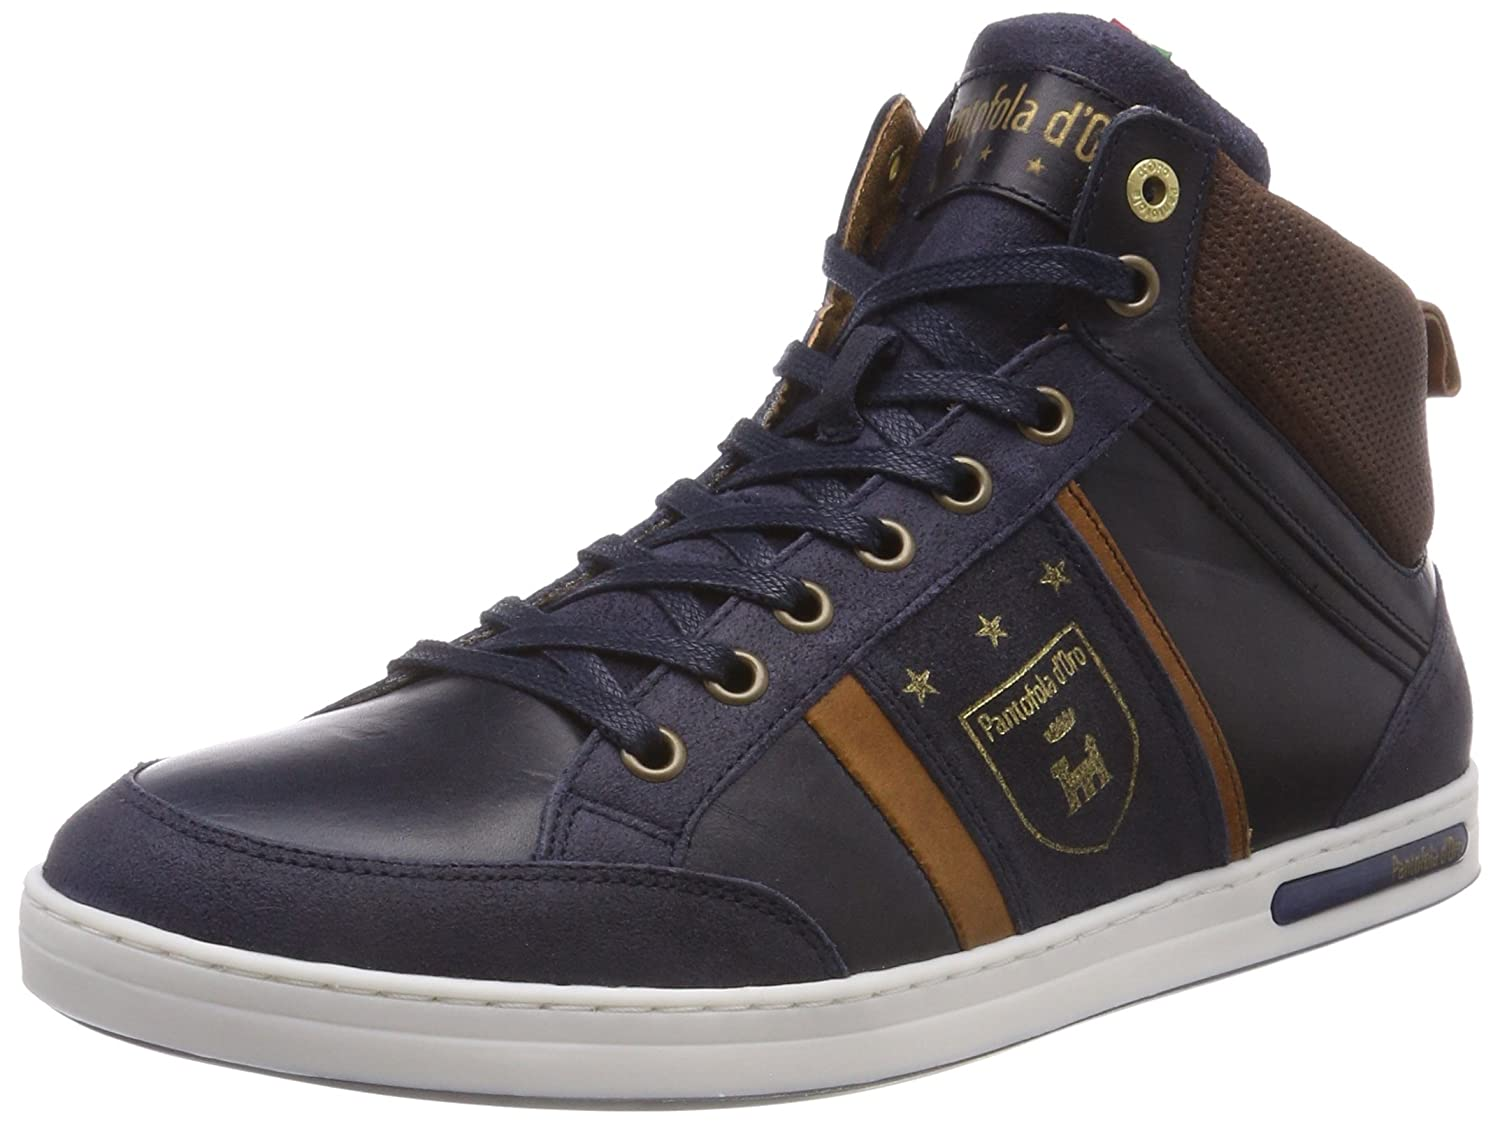 Mondovi Collo Pantofola Amazon Sneaker a Alto Uomo it d'Oro Mid 5qqYT